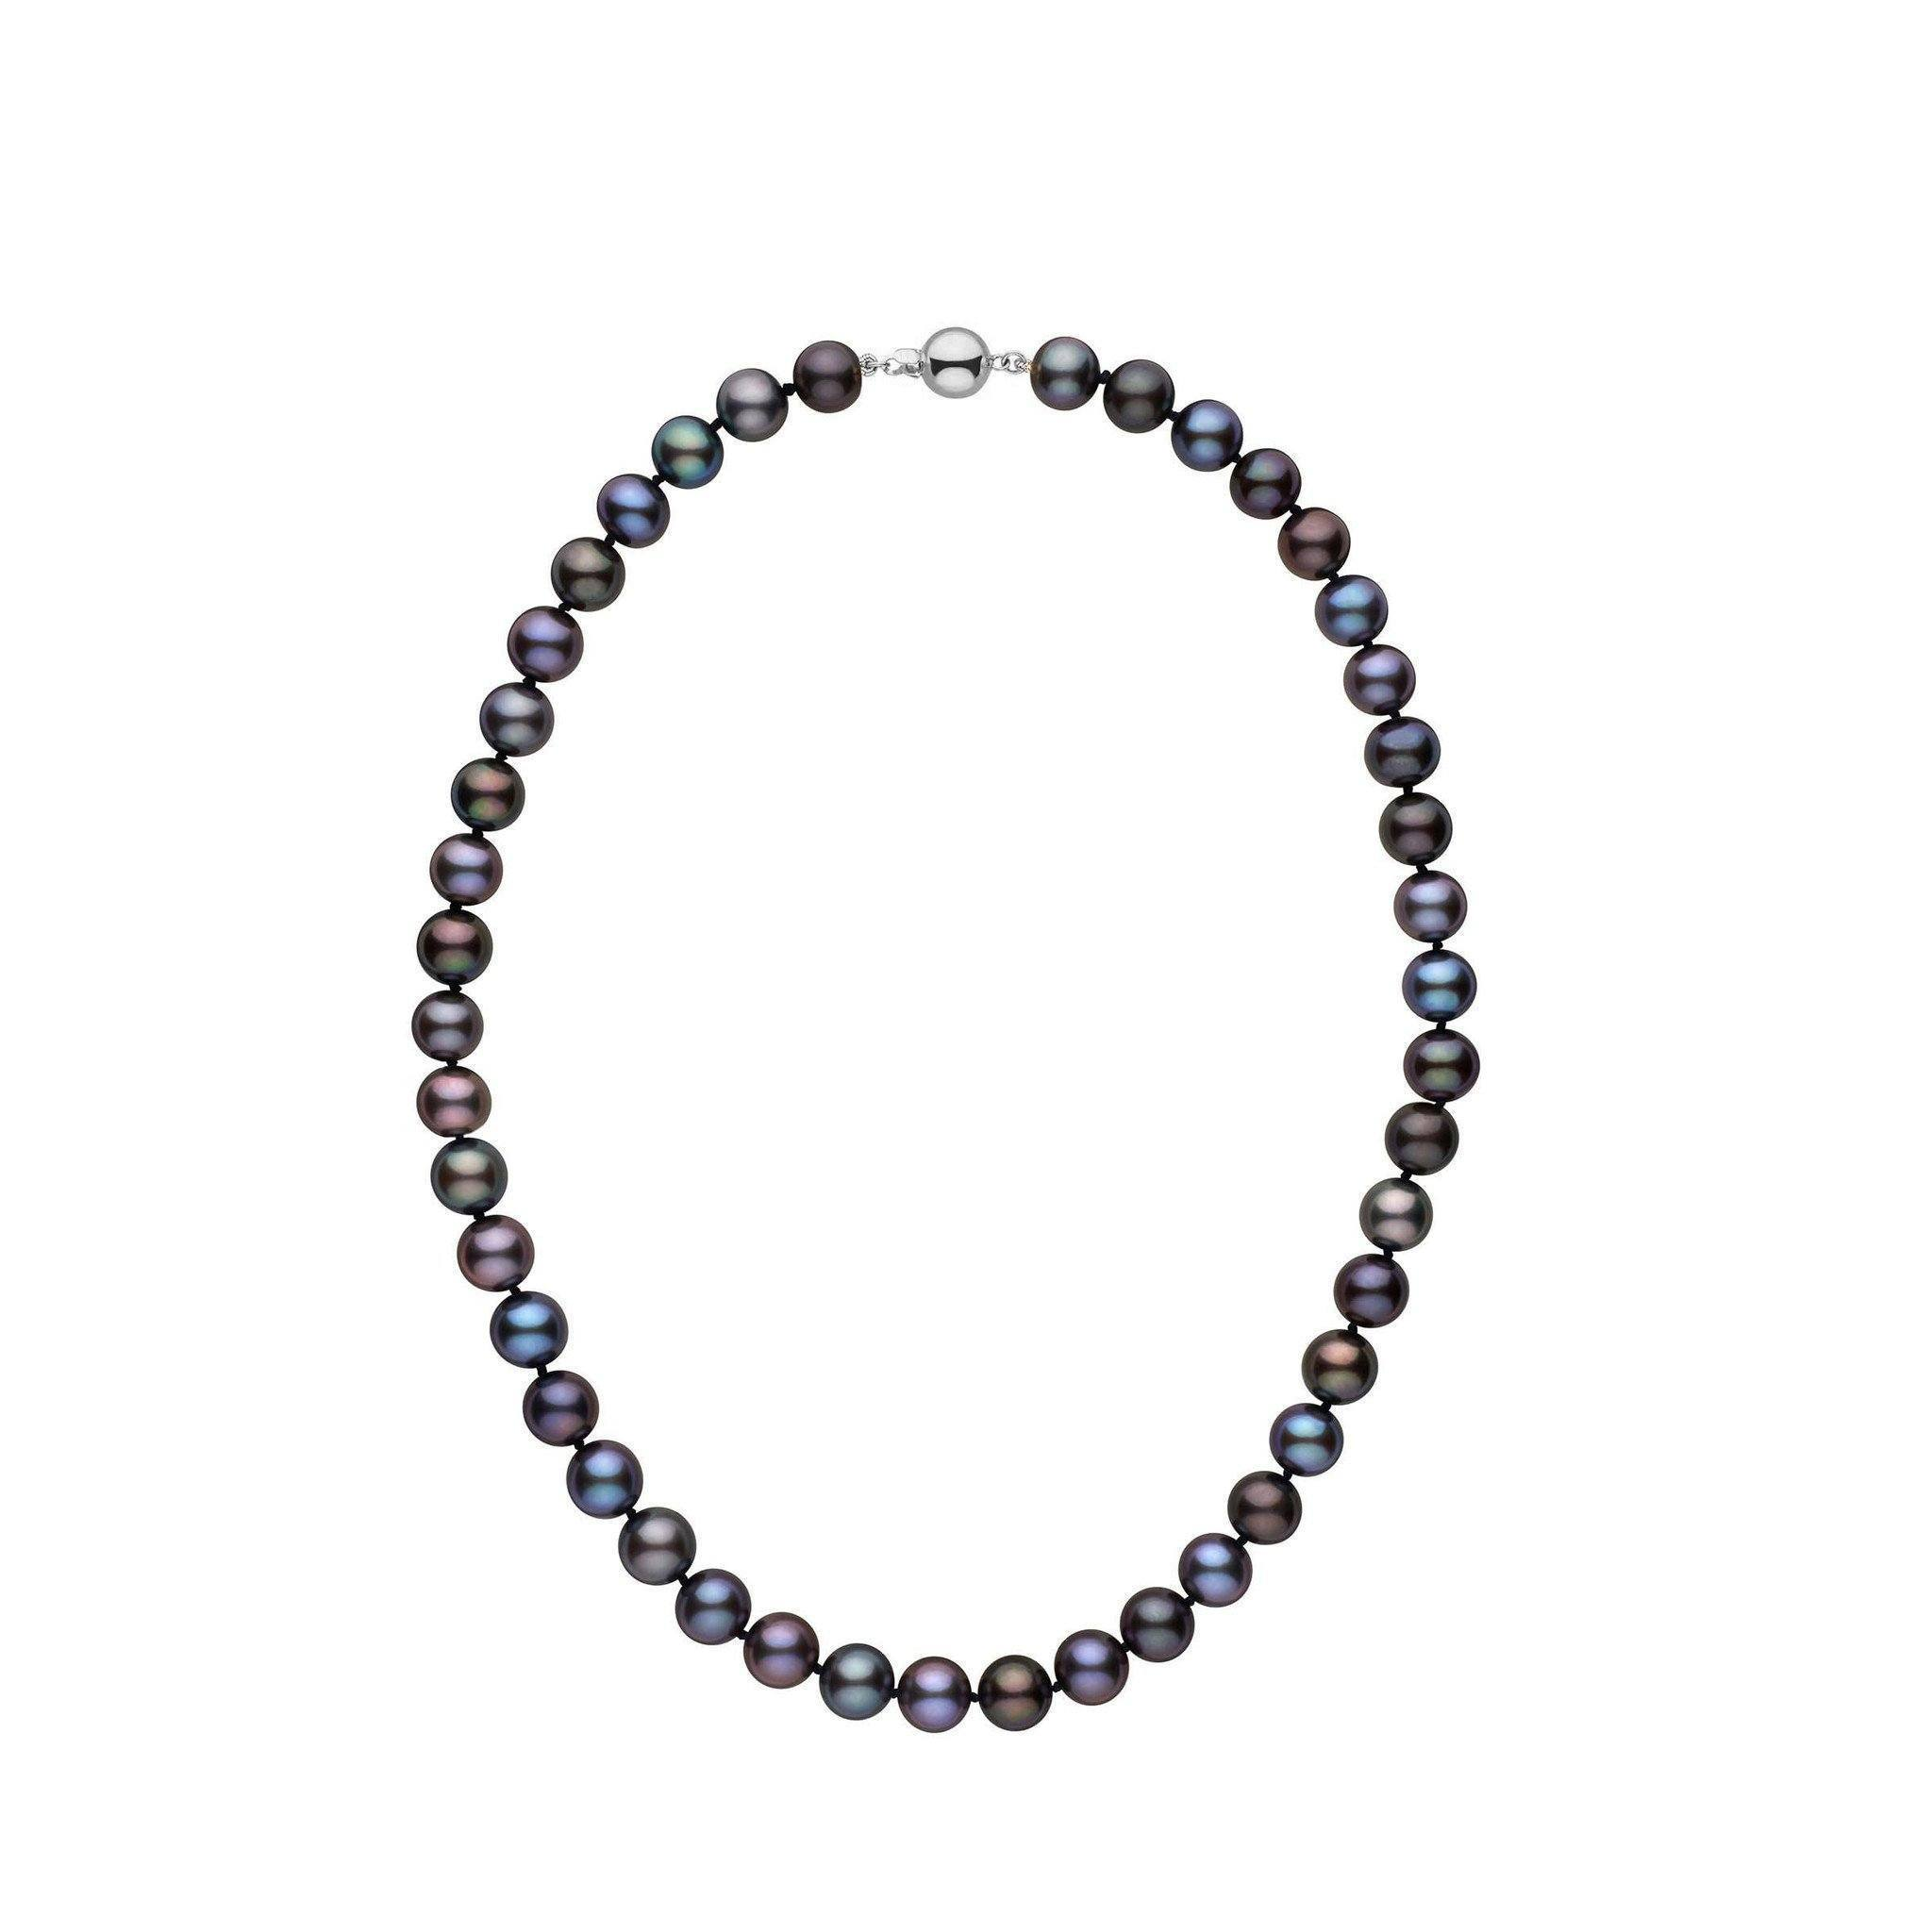 8.5-9.0 mm 16 Inch AA+ Black Freshwater Pearl Necklace